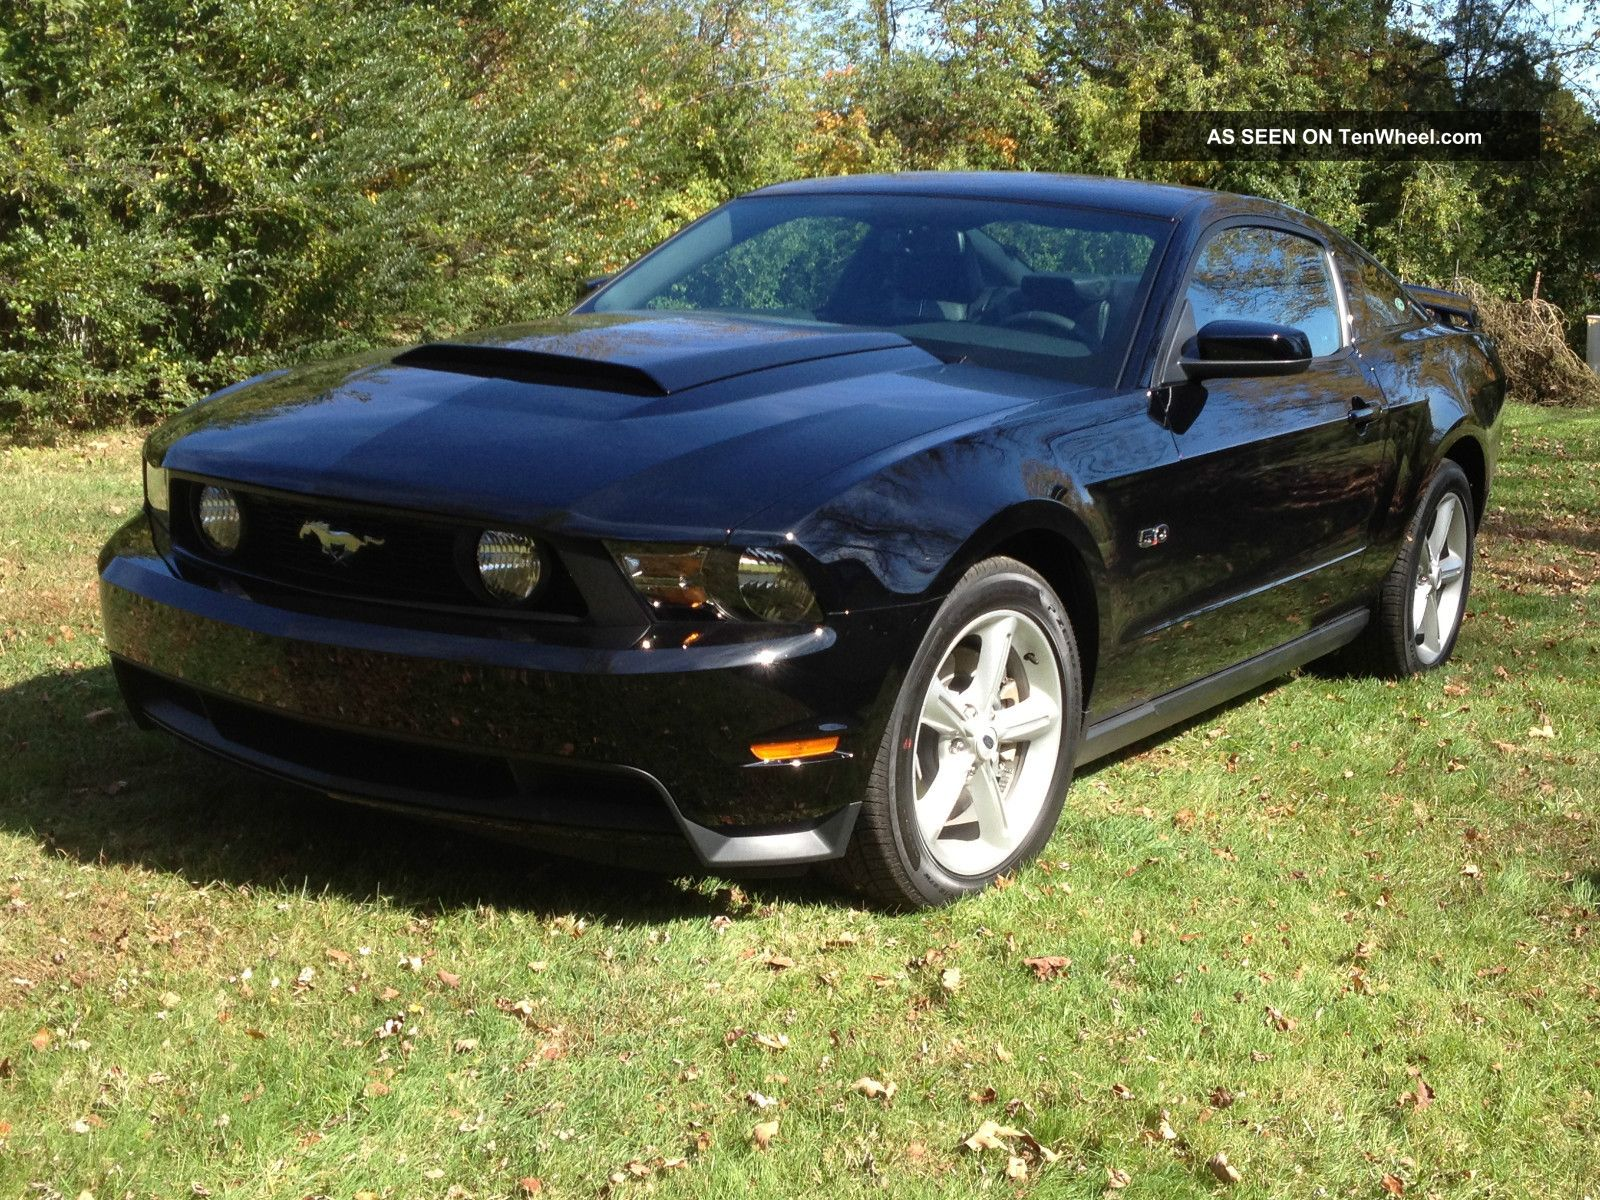 2012 ford mustang gt premium 5 0 sync shaker. Black Bedroom Furniture Sets. Home Design Ideas